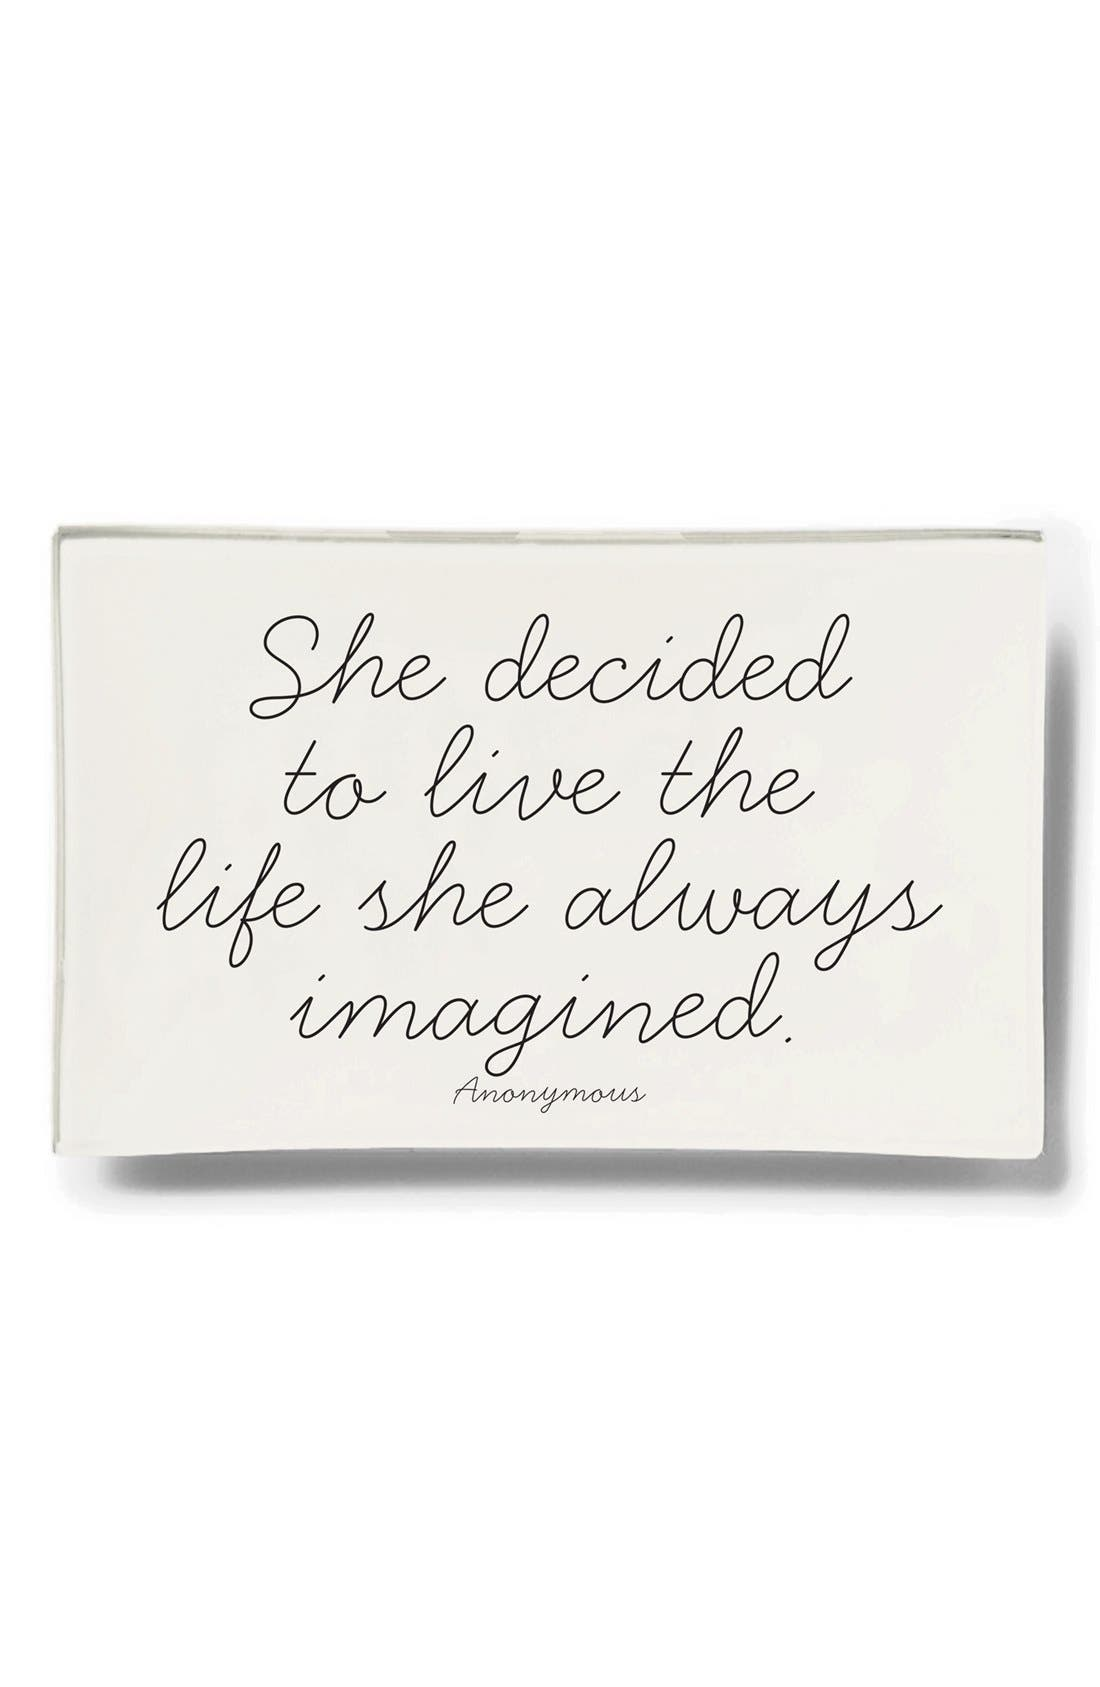 'The Life She Always Imagined' Bent Glass Tray,                         Main,                         color, Ivory